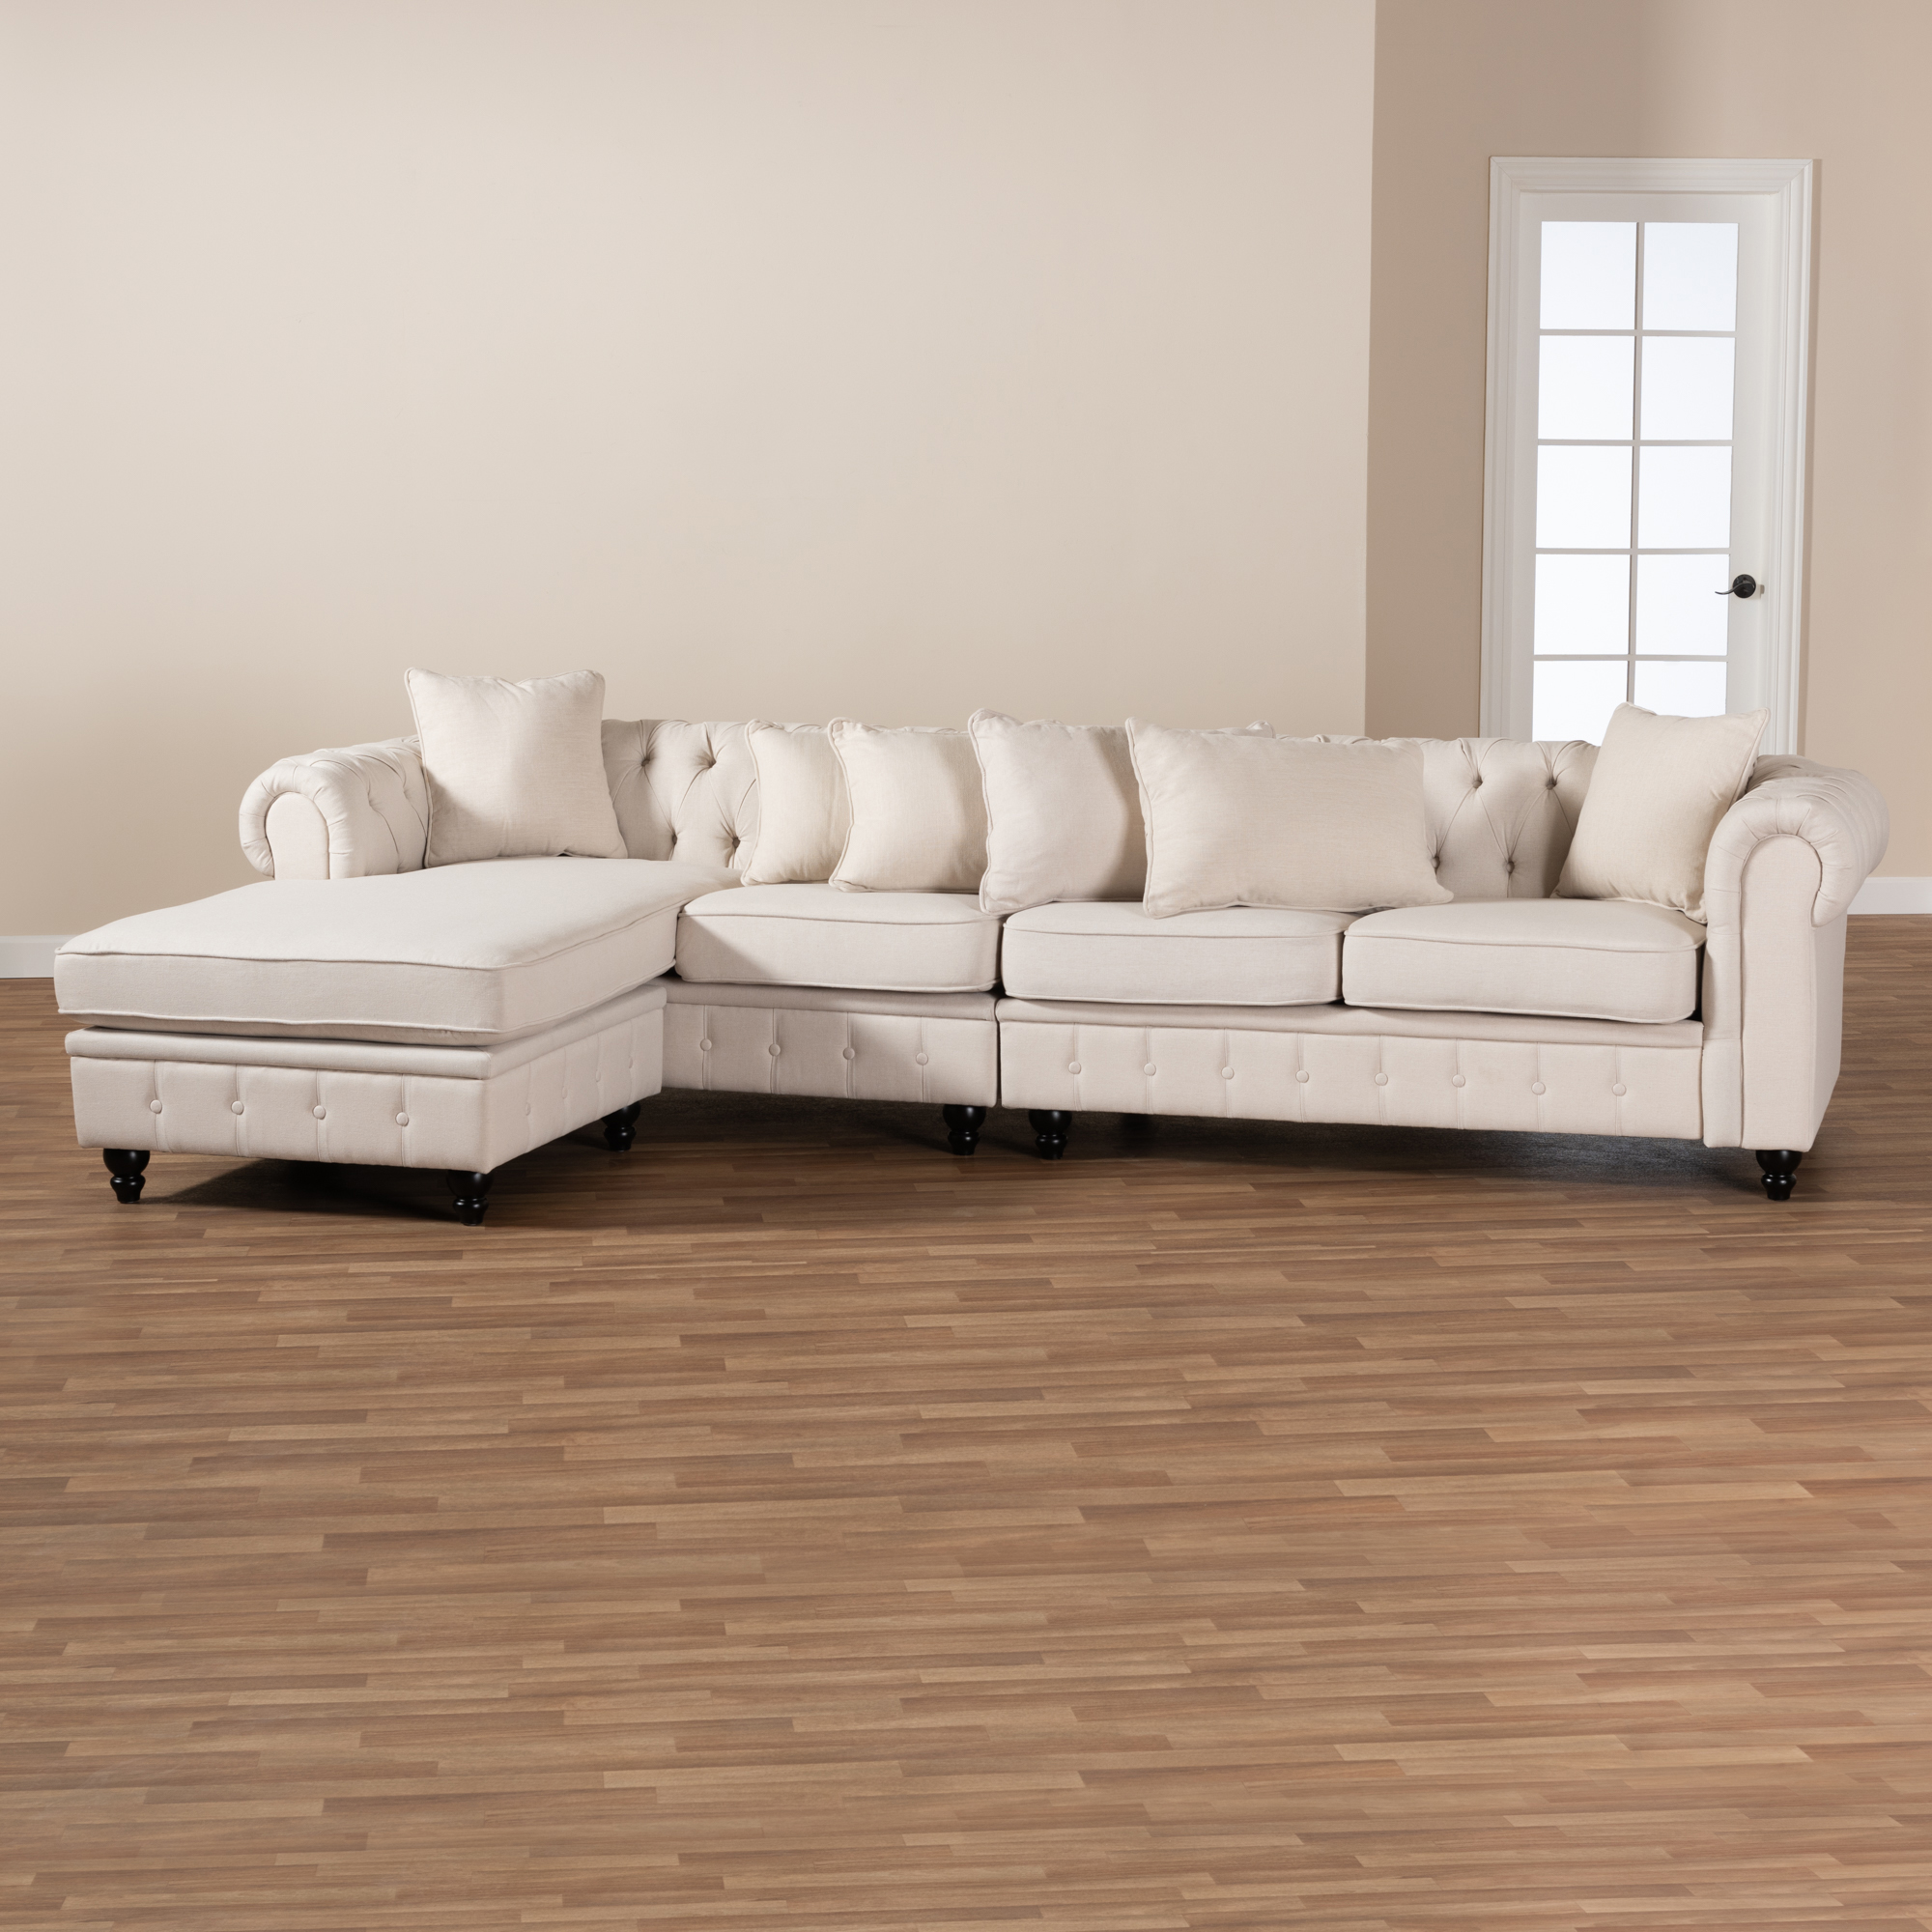 Chesterfield Sectional Sofa Wholesale Sofa Loveseats Wholesale Living Room Furniture